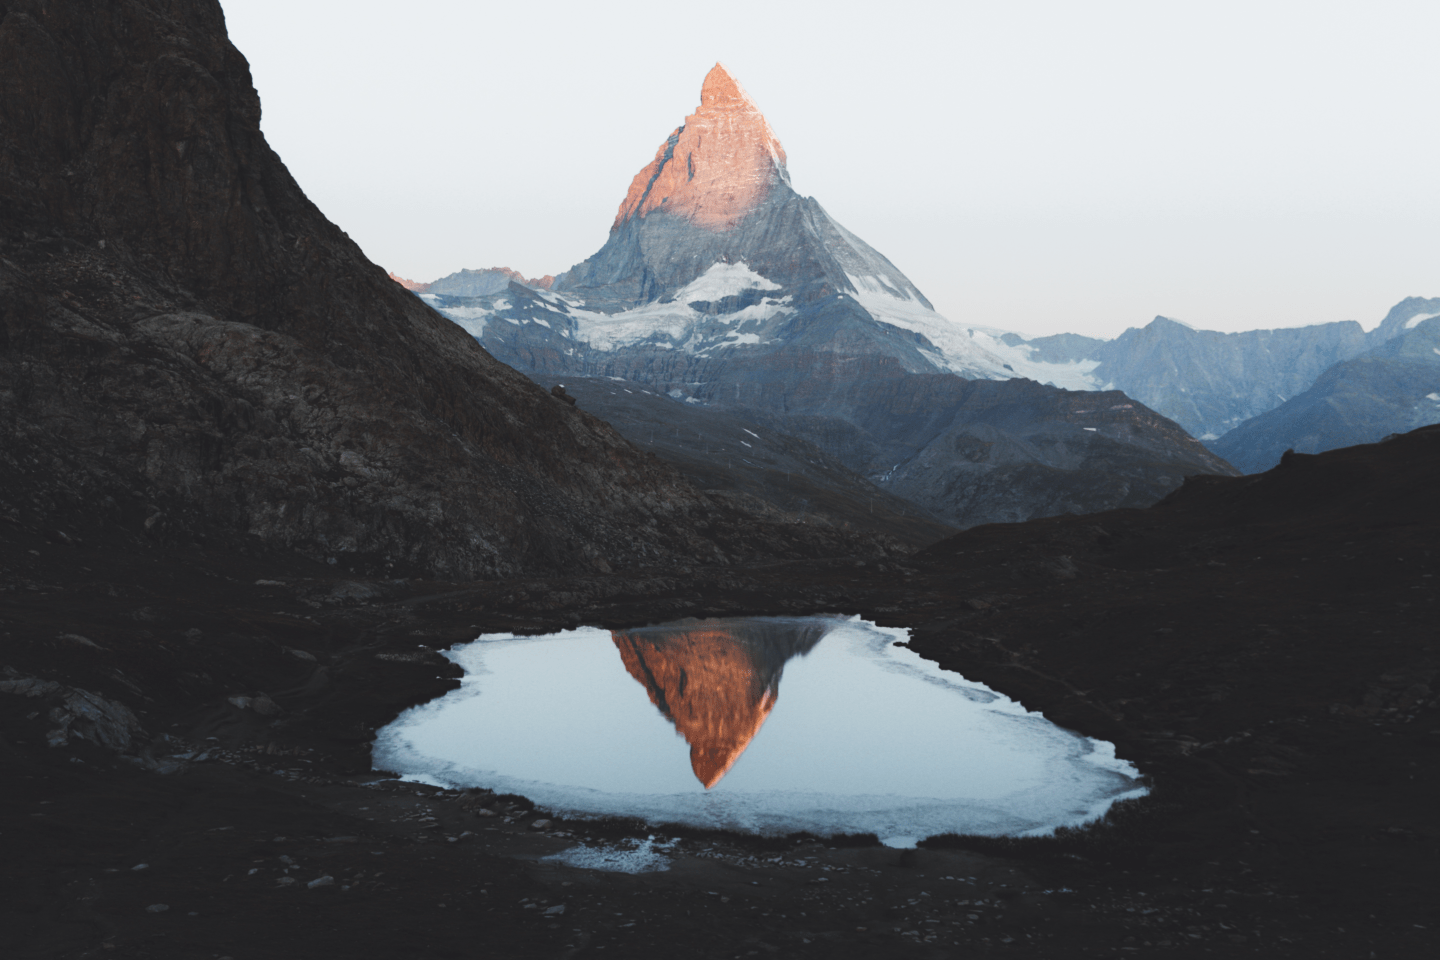 Reflection of the Matterhorn in Riffelsee